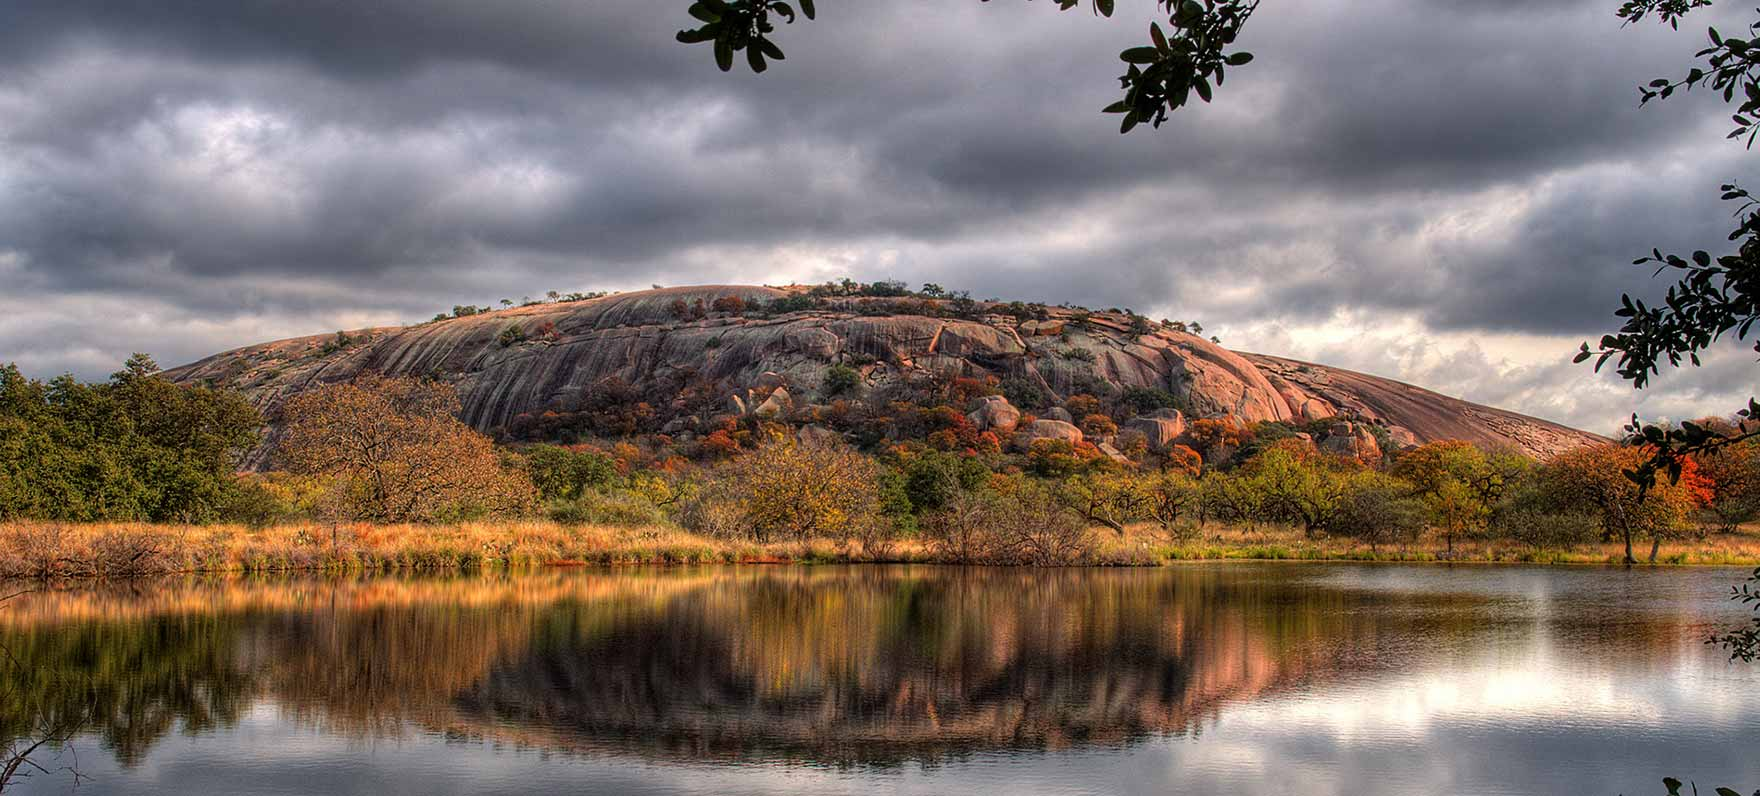 Enchanted-Rock.jpg